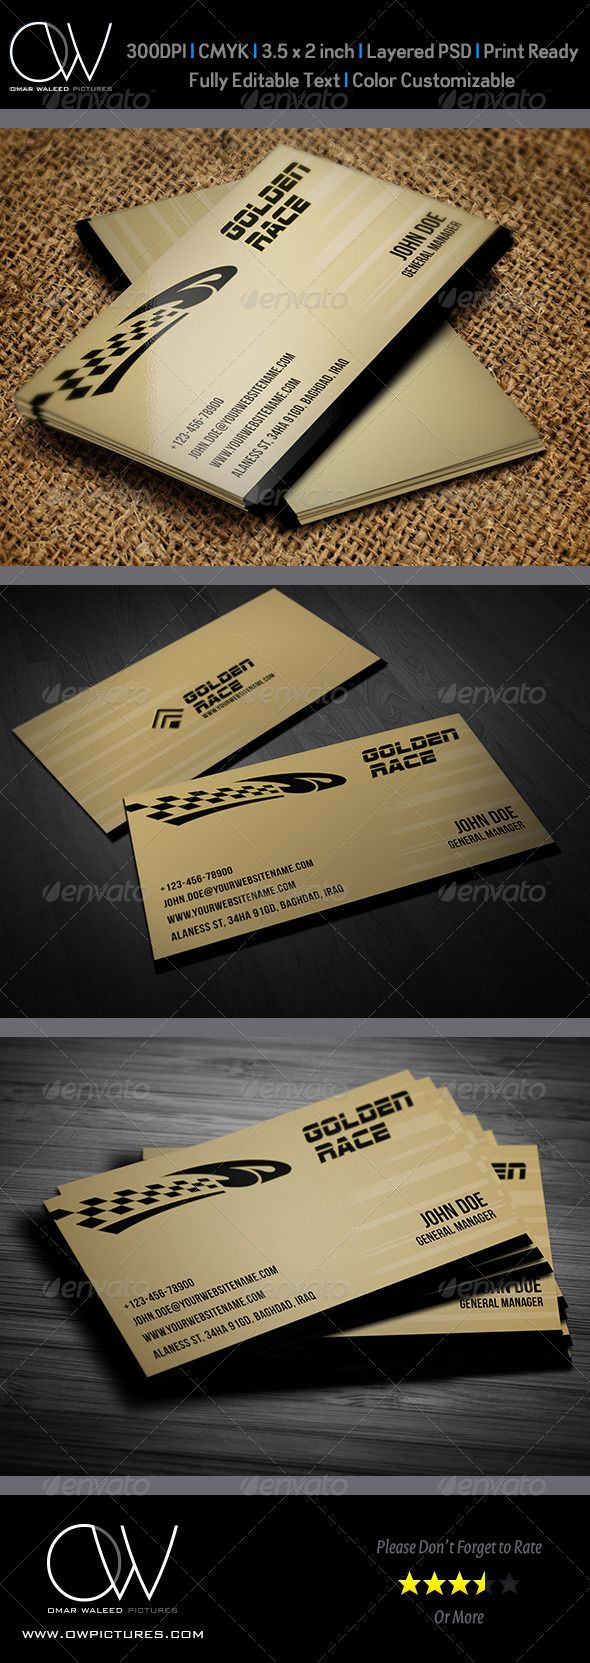 28 best heres my card images on pinterest business cards sport race business card template colourmoves